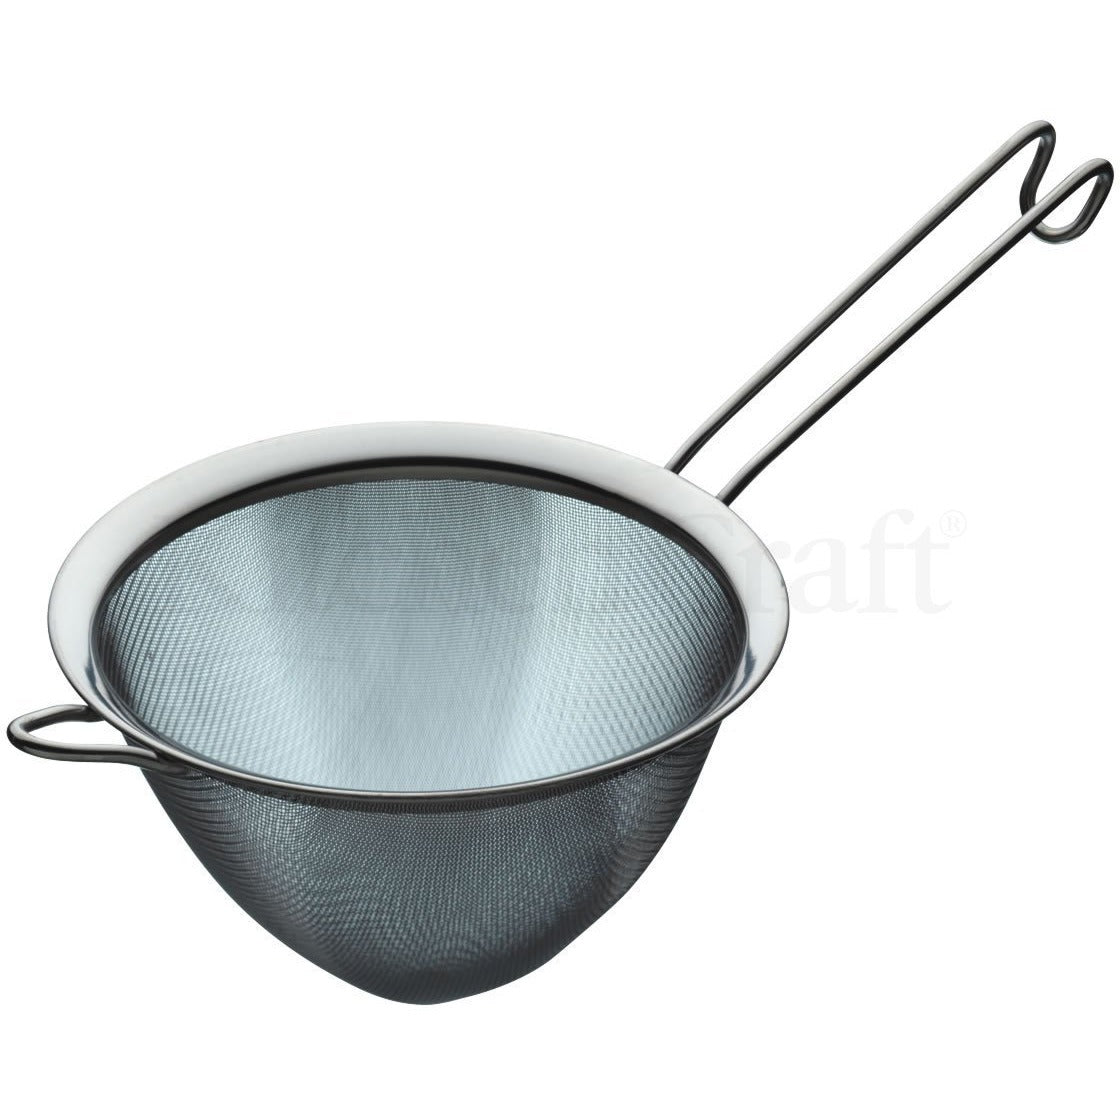 Kitchen Craft 18cm Conical Sieve